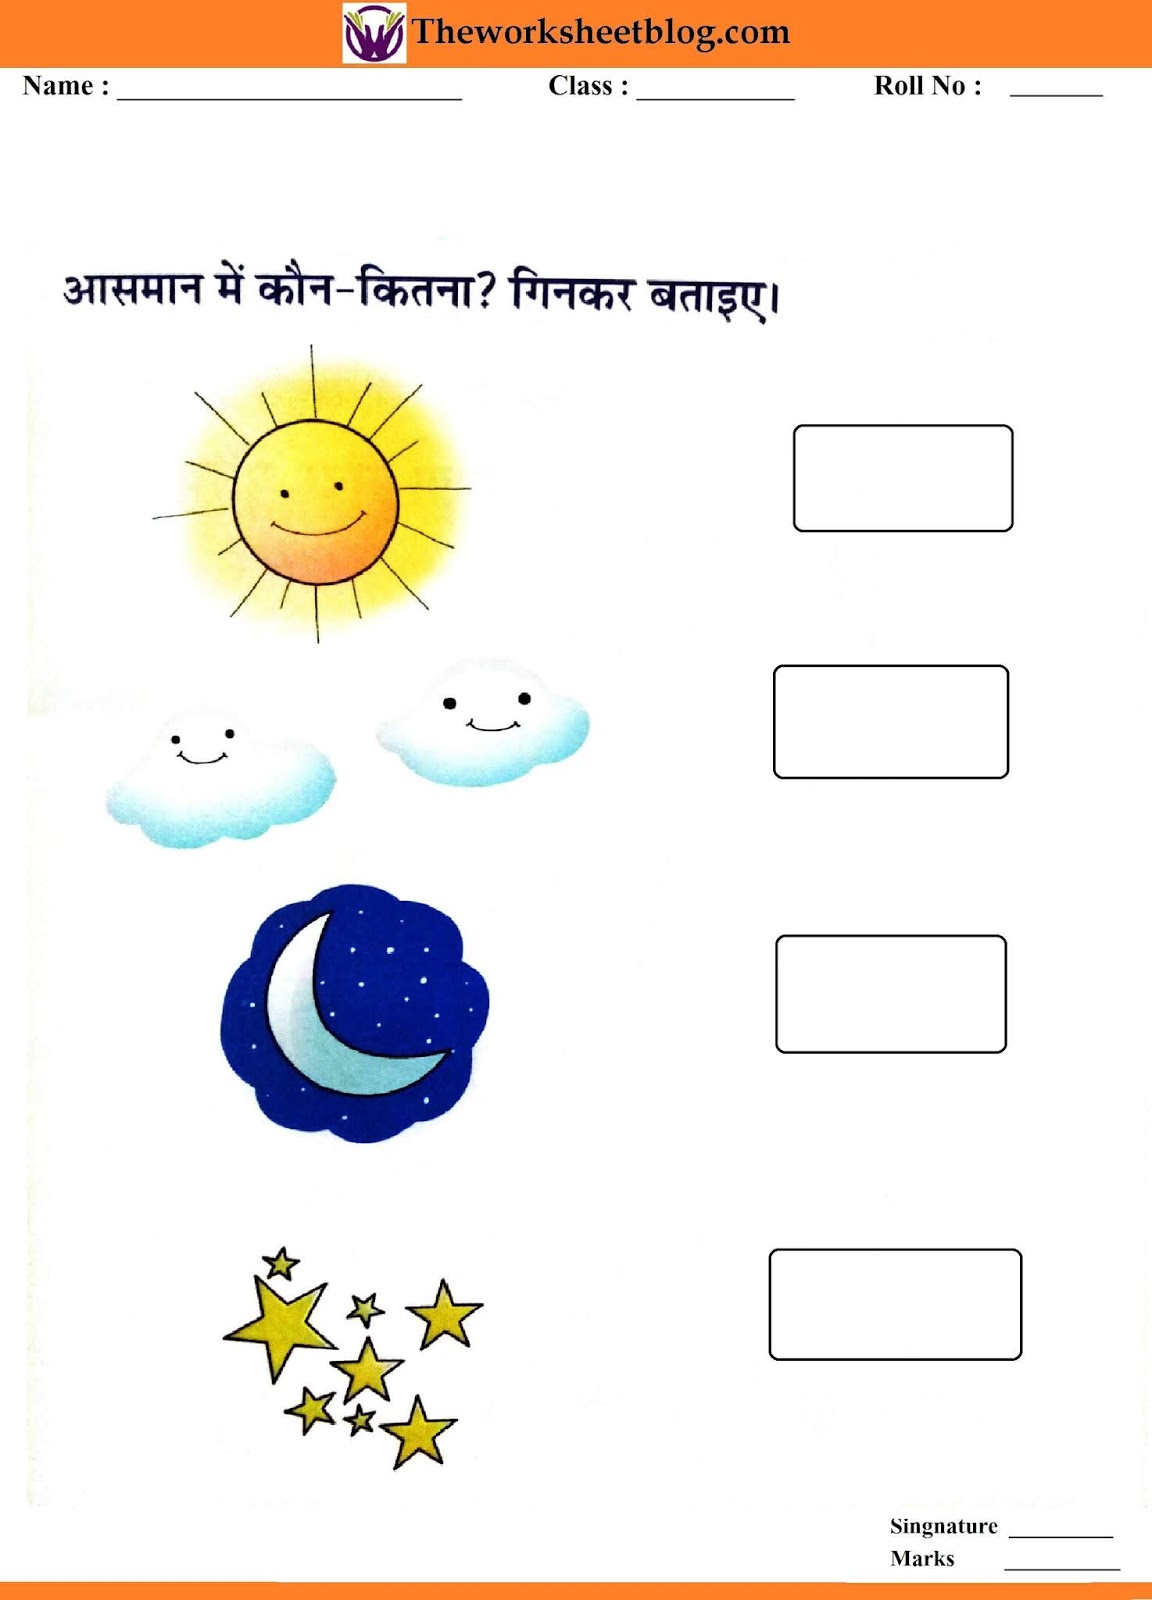 medium resolution of Hindi activity worksheet for beginners with pictures. - Theworksheetsblog